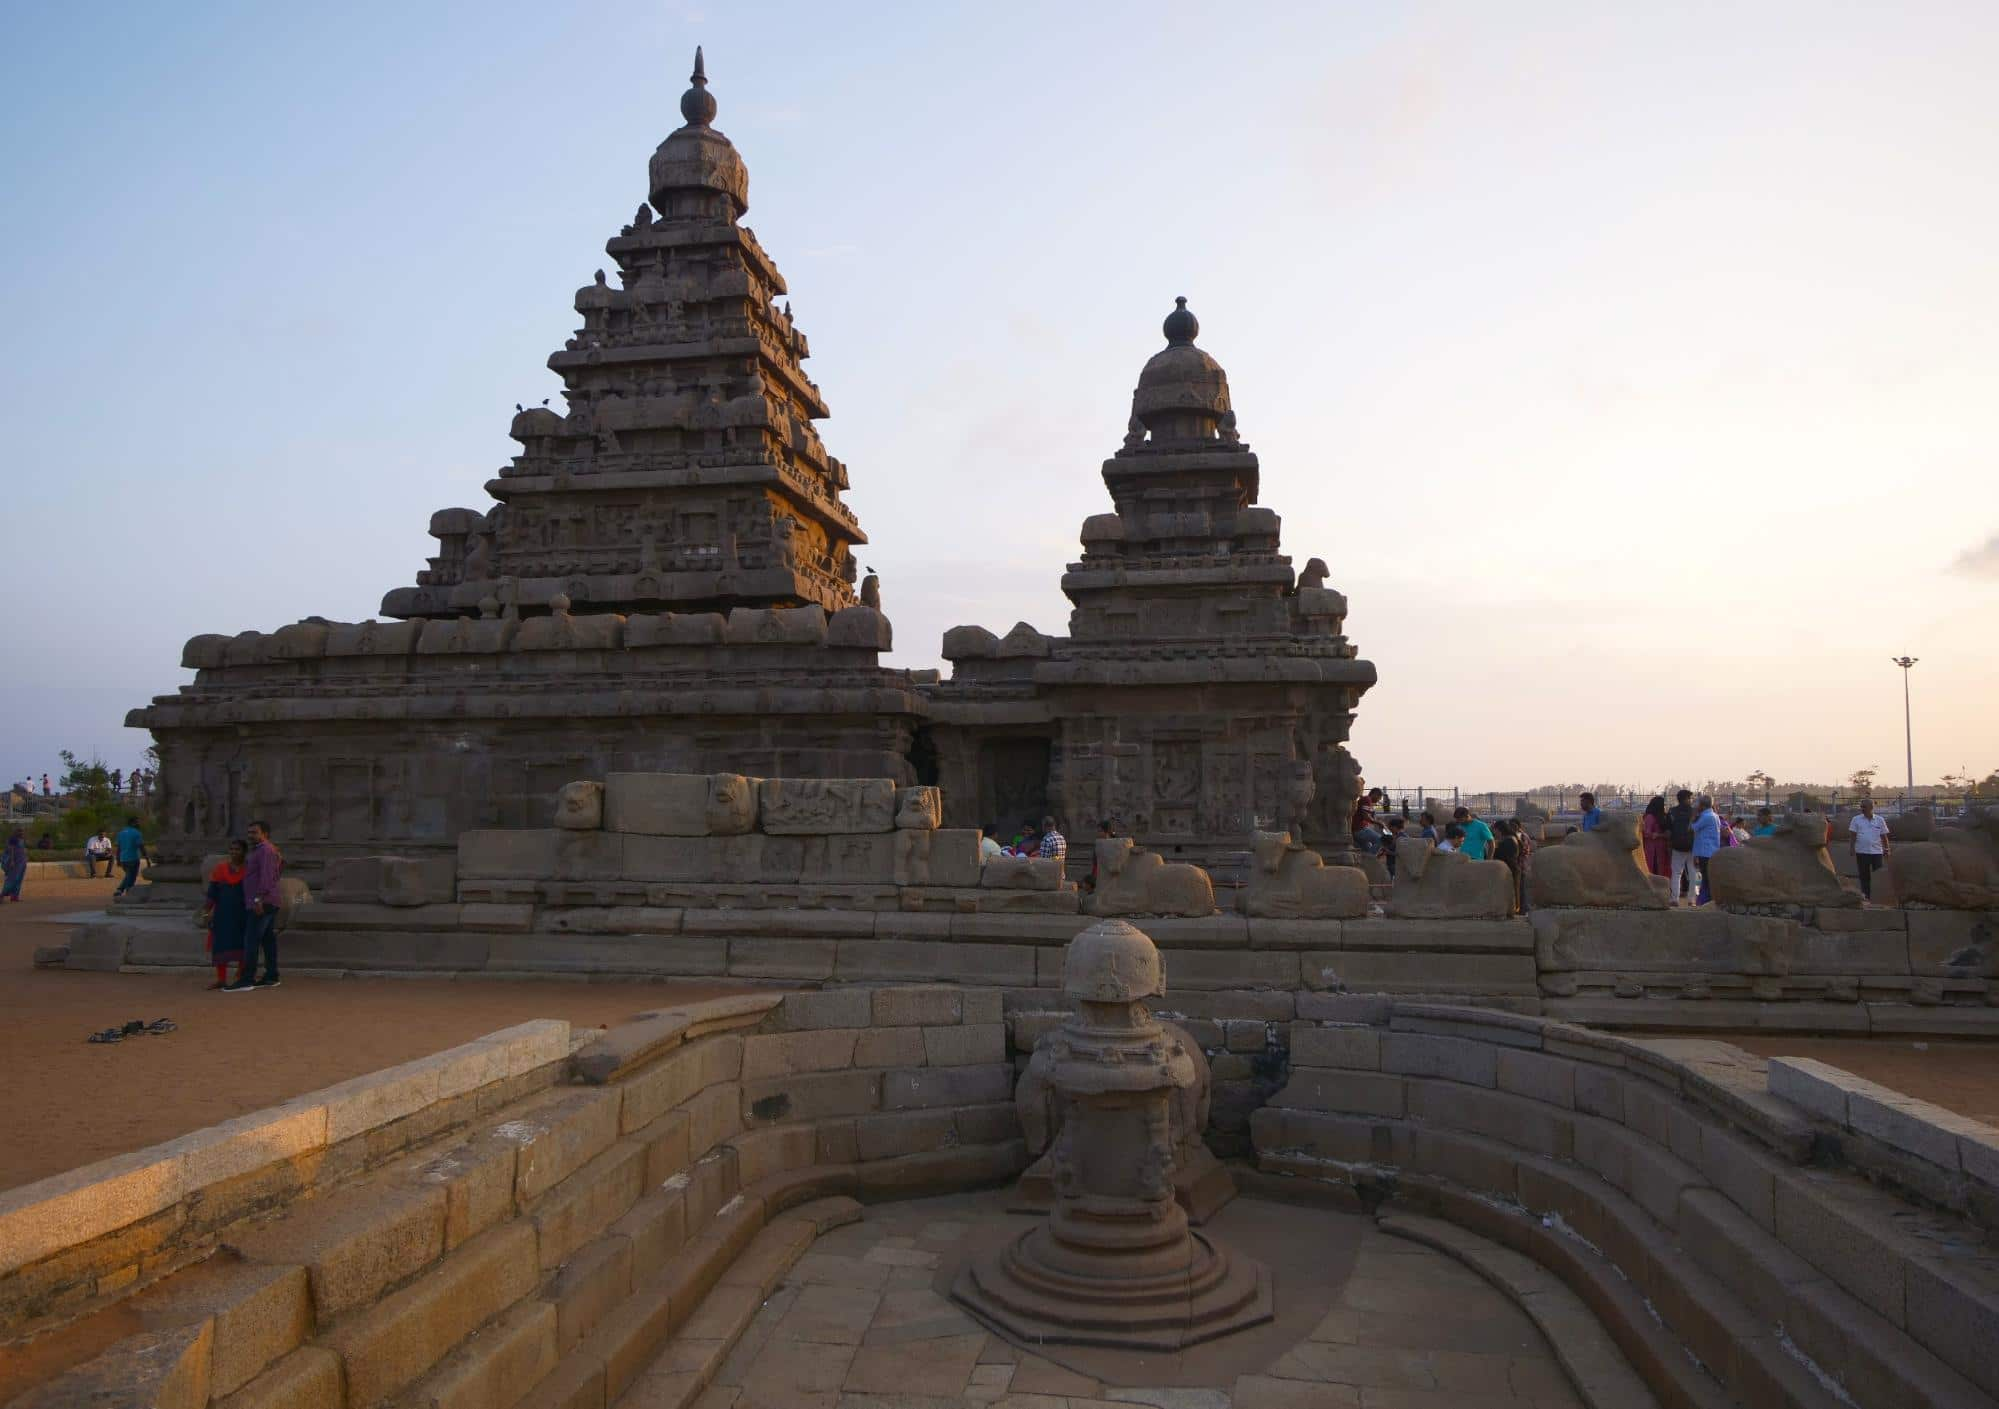 Shore Temple from afar